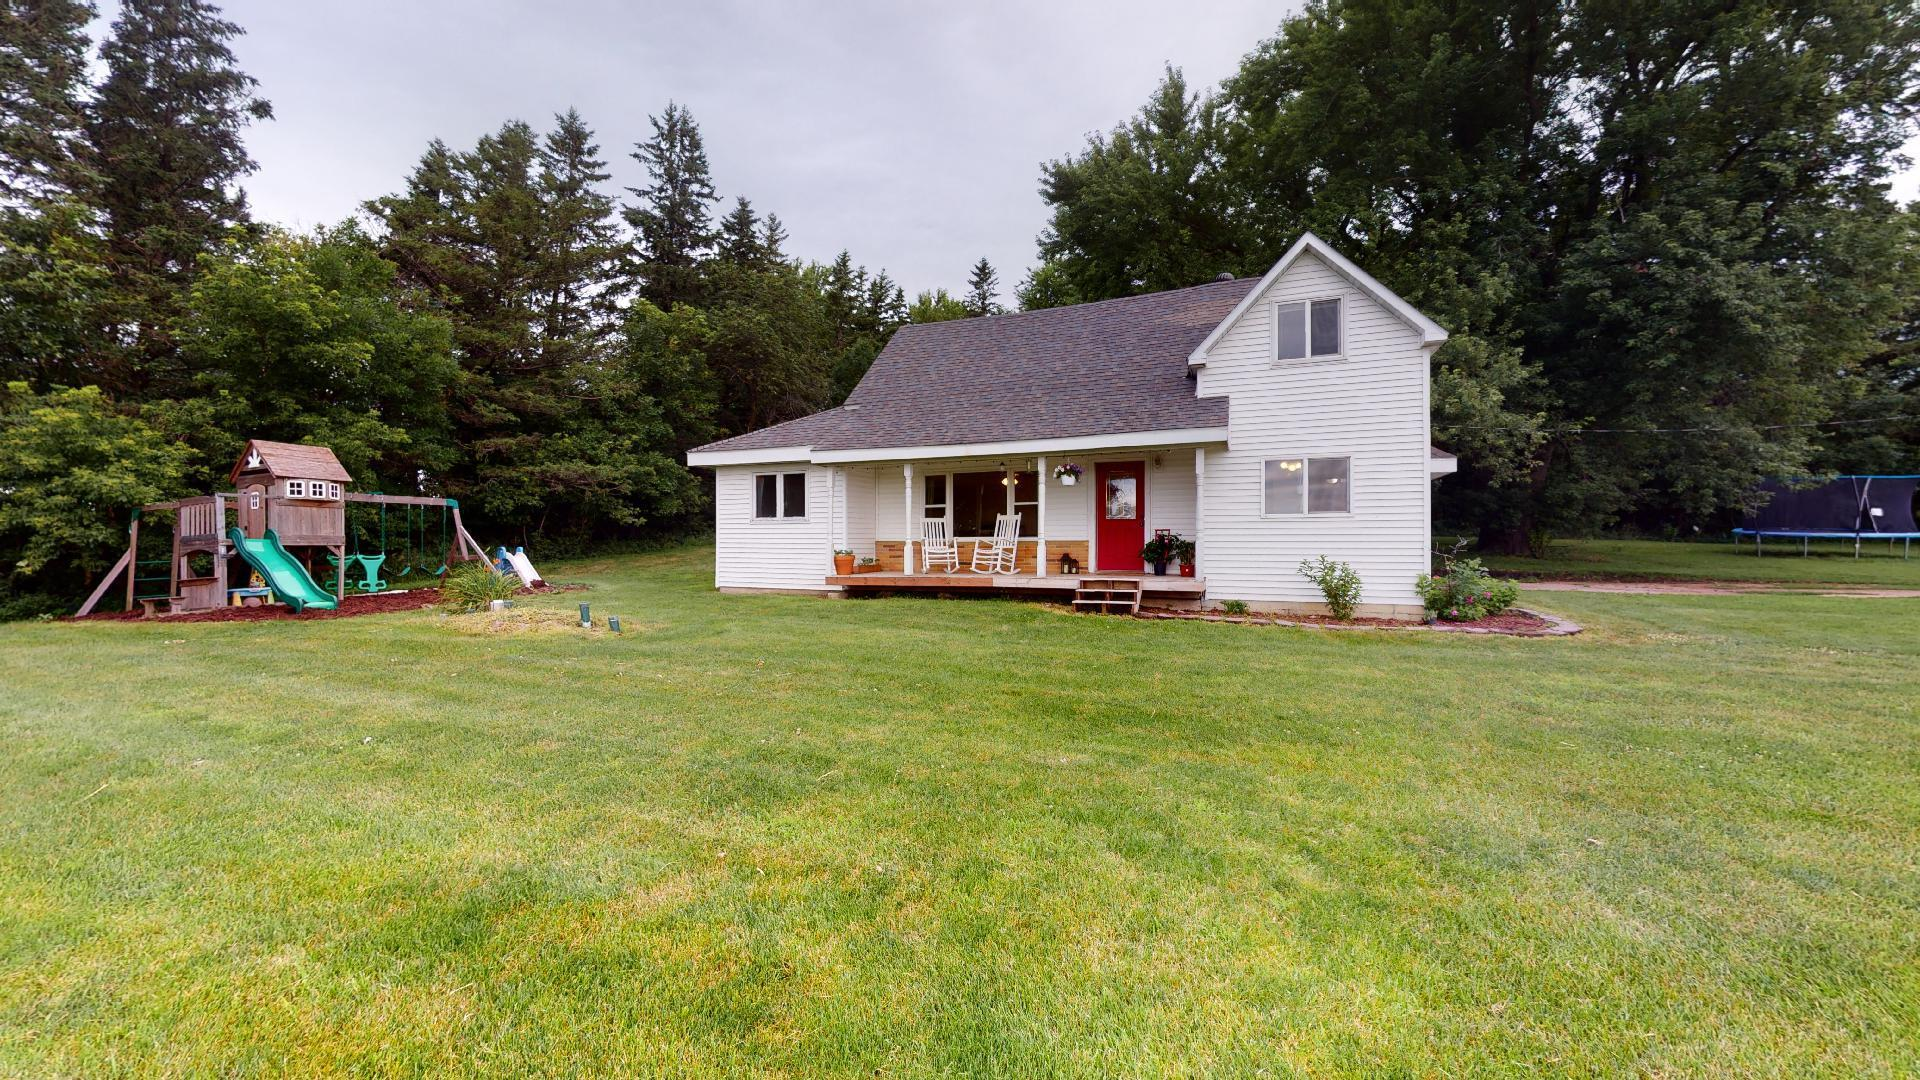 8370 168th Property Photo - Ellendale, MN real estate listing